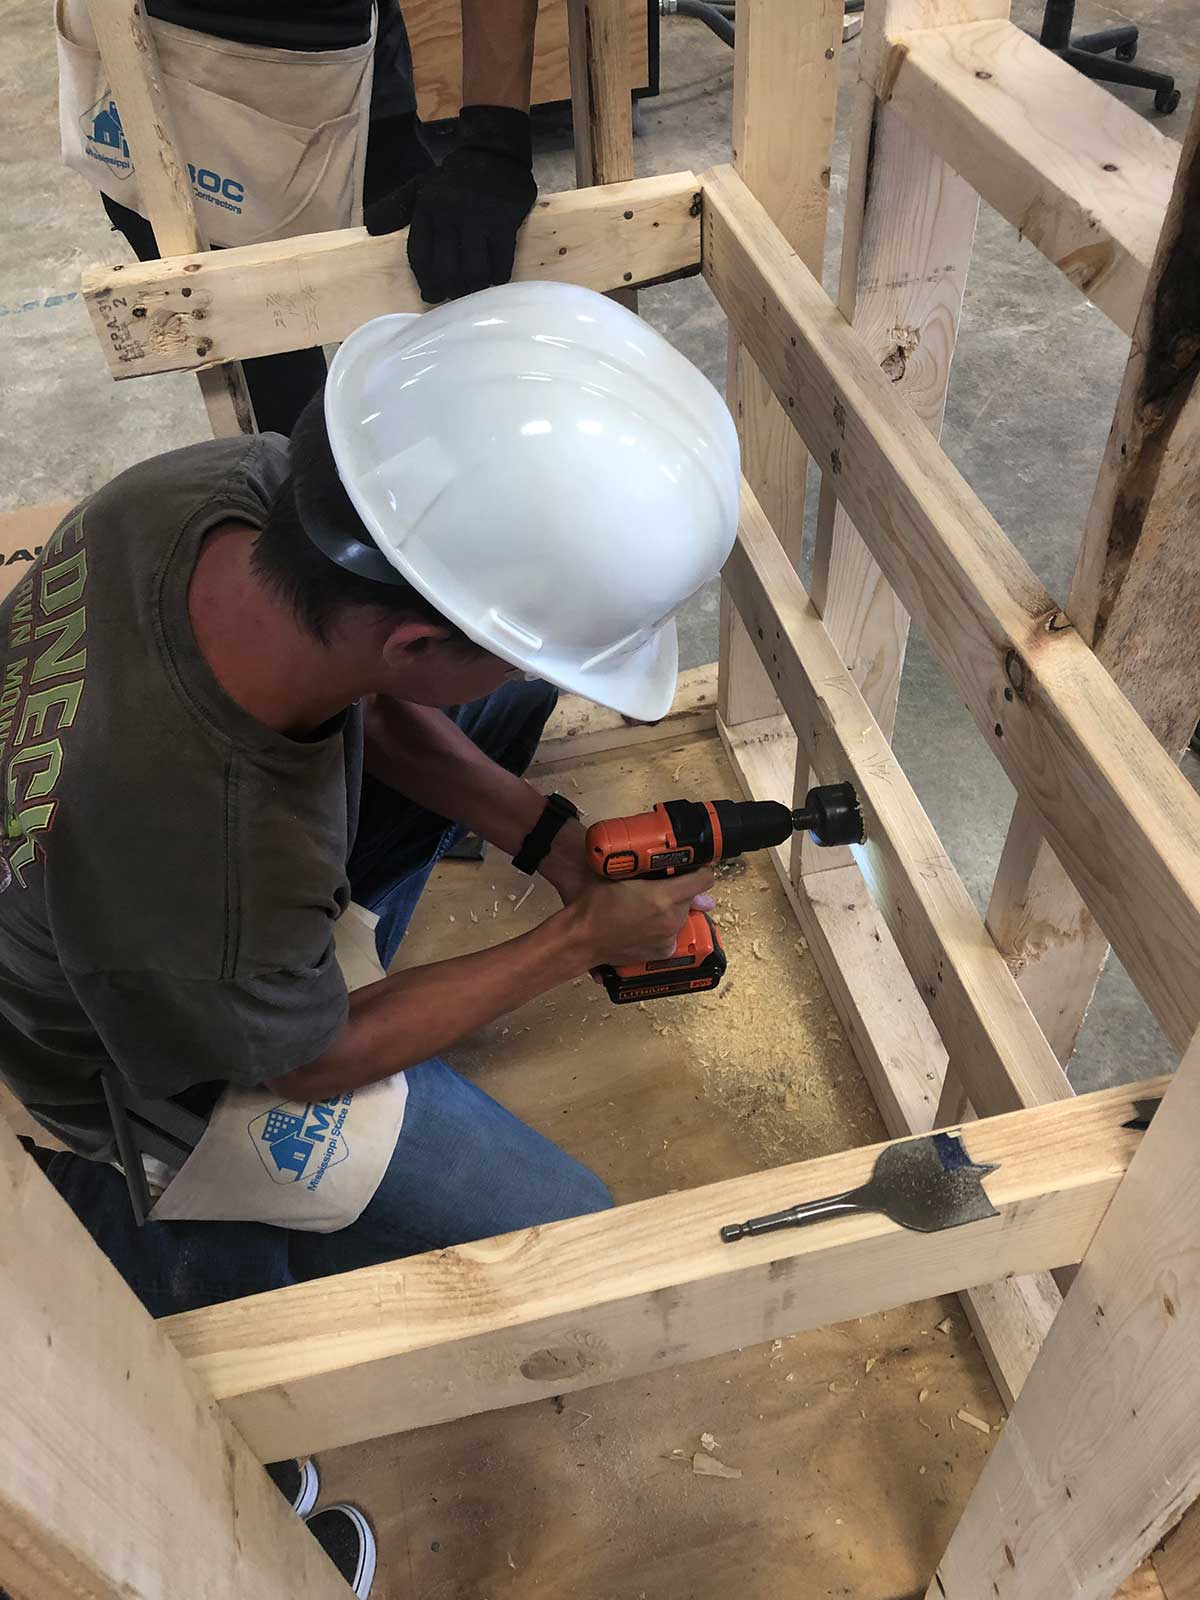 construction professional drills a hole in shooting house interior wood